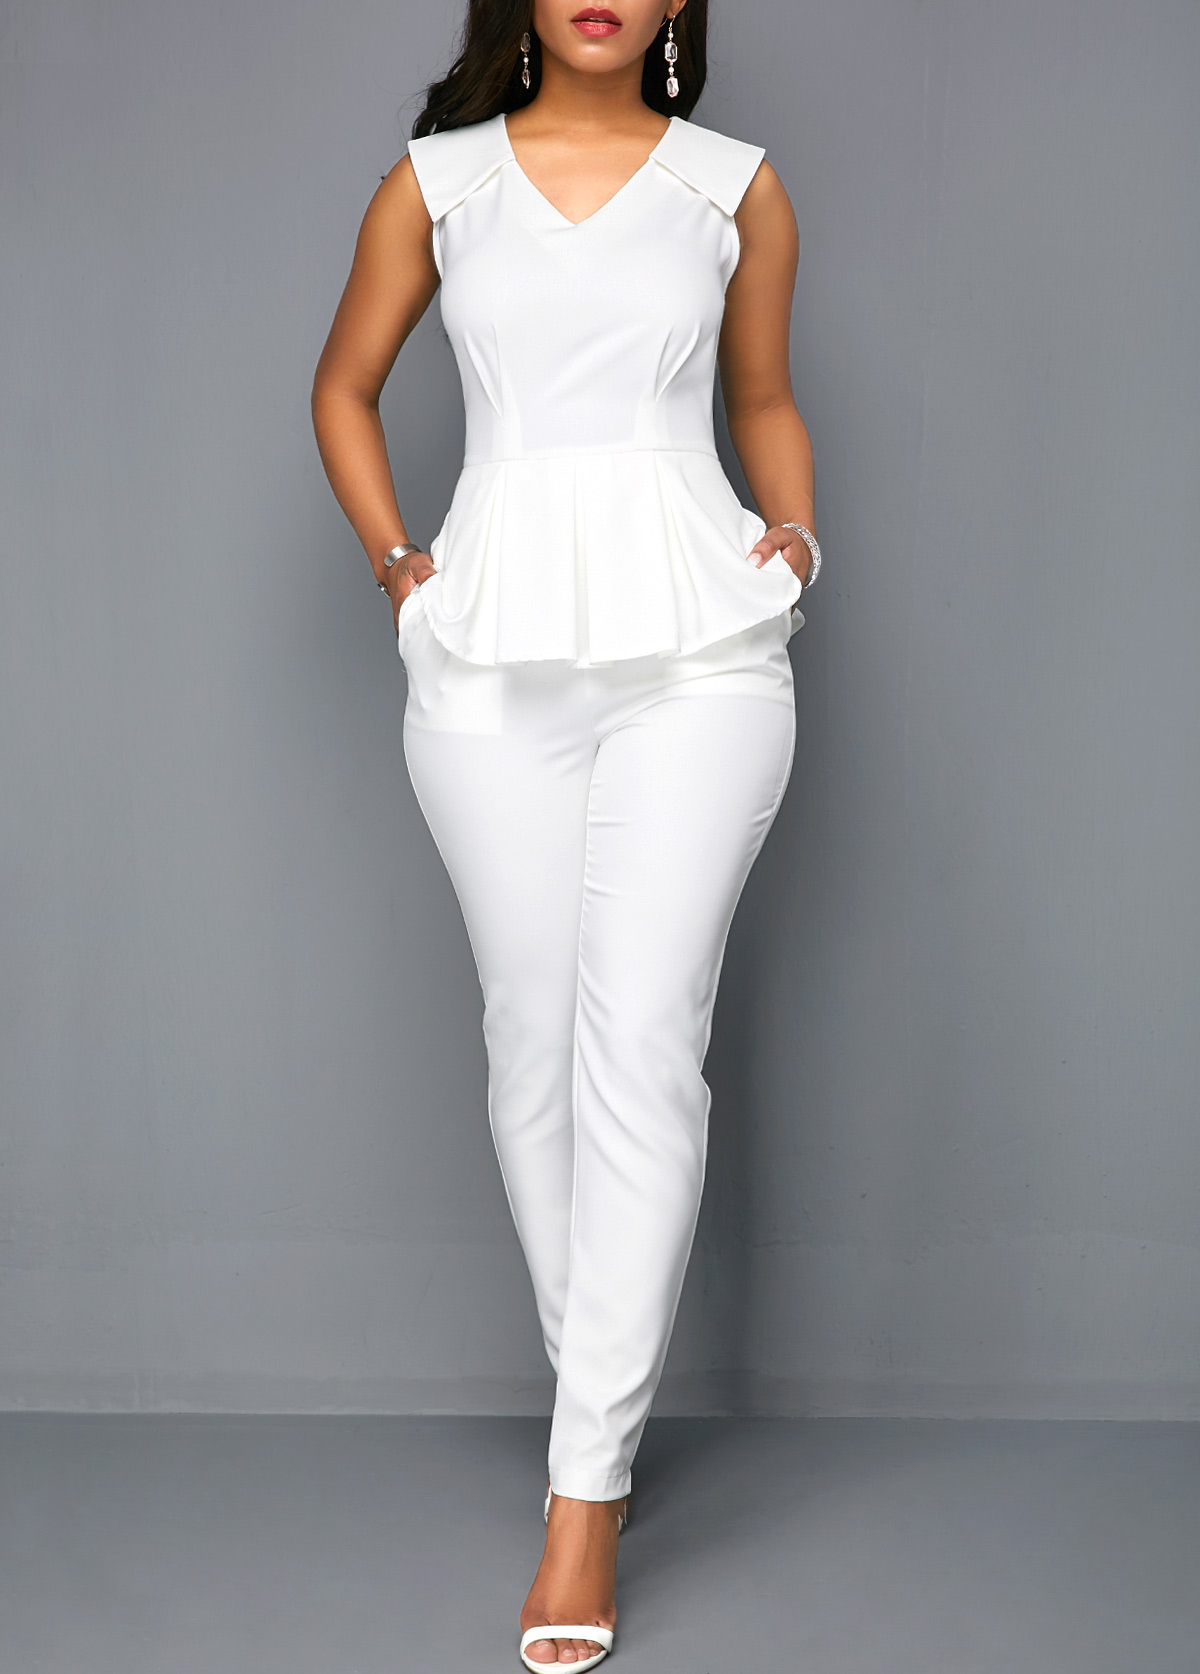 ROTITA V Neck Sleeveless White Peplum Jumpsuit